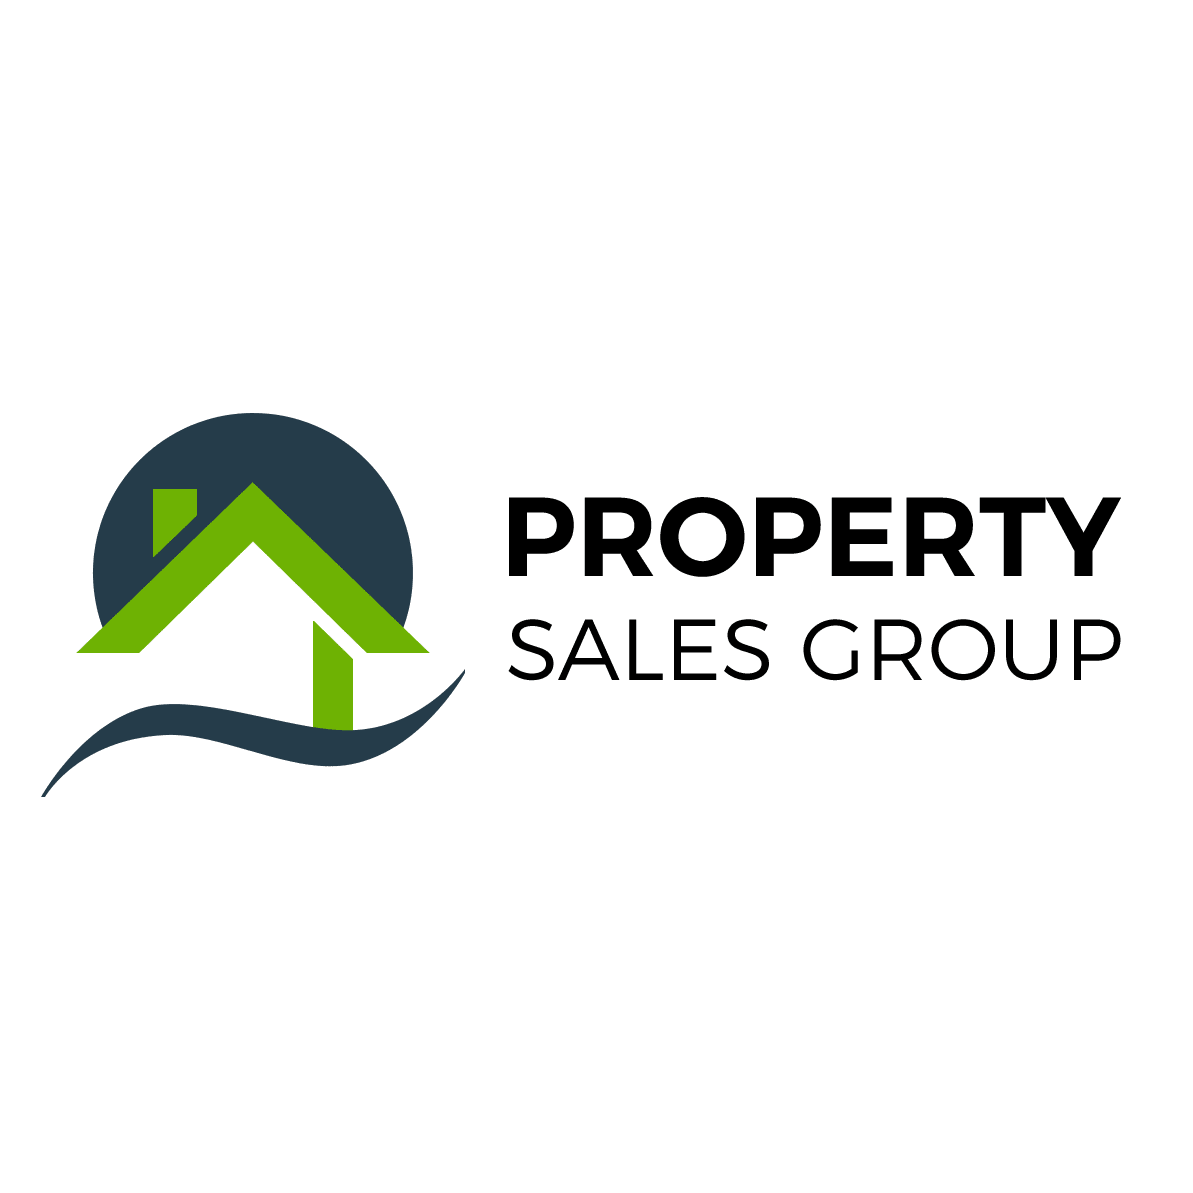 PROPERTY SALES GROUP